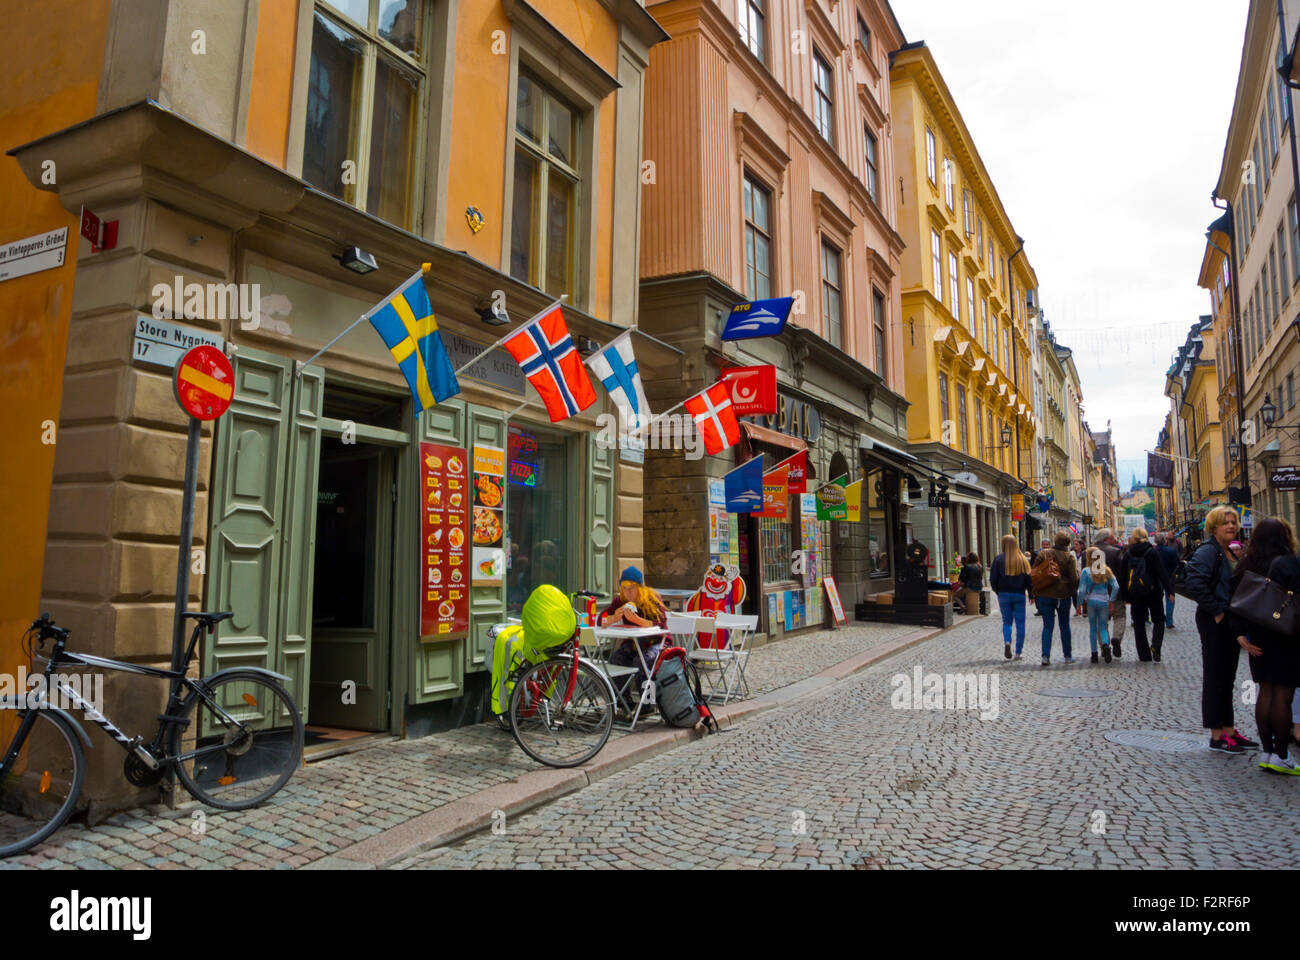 Top 10 restaurants in Stockholm's Old Town - View Stockholm